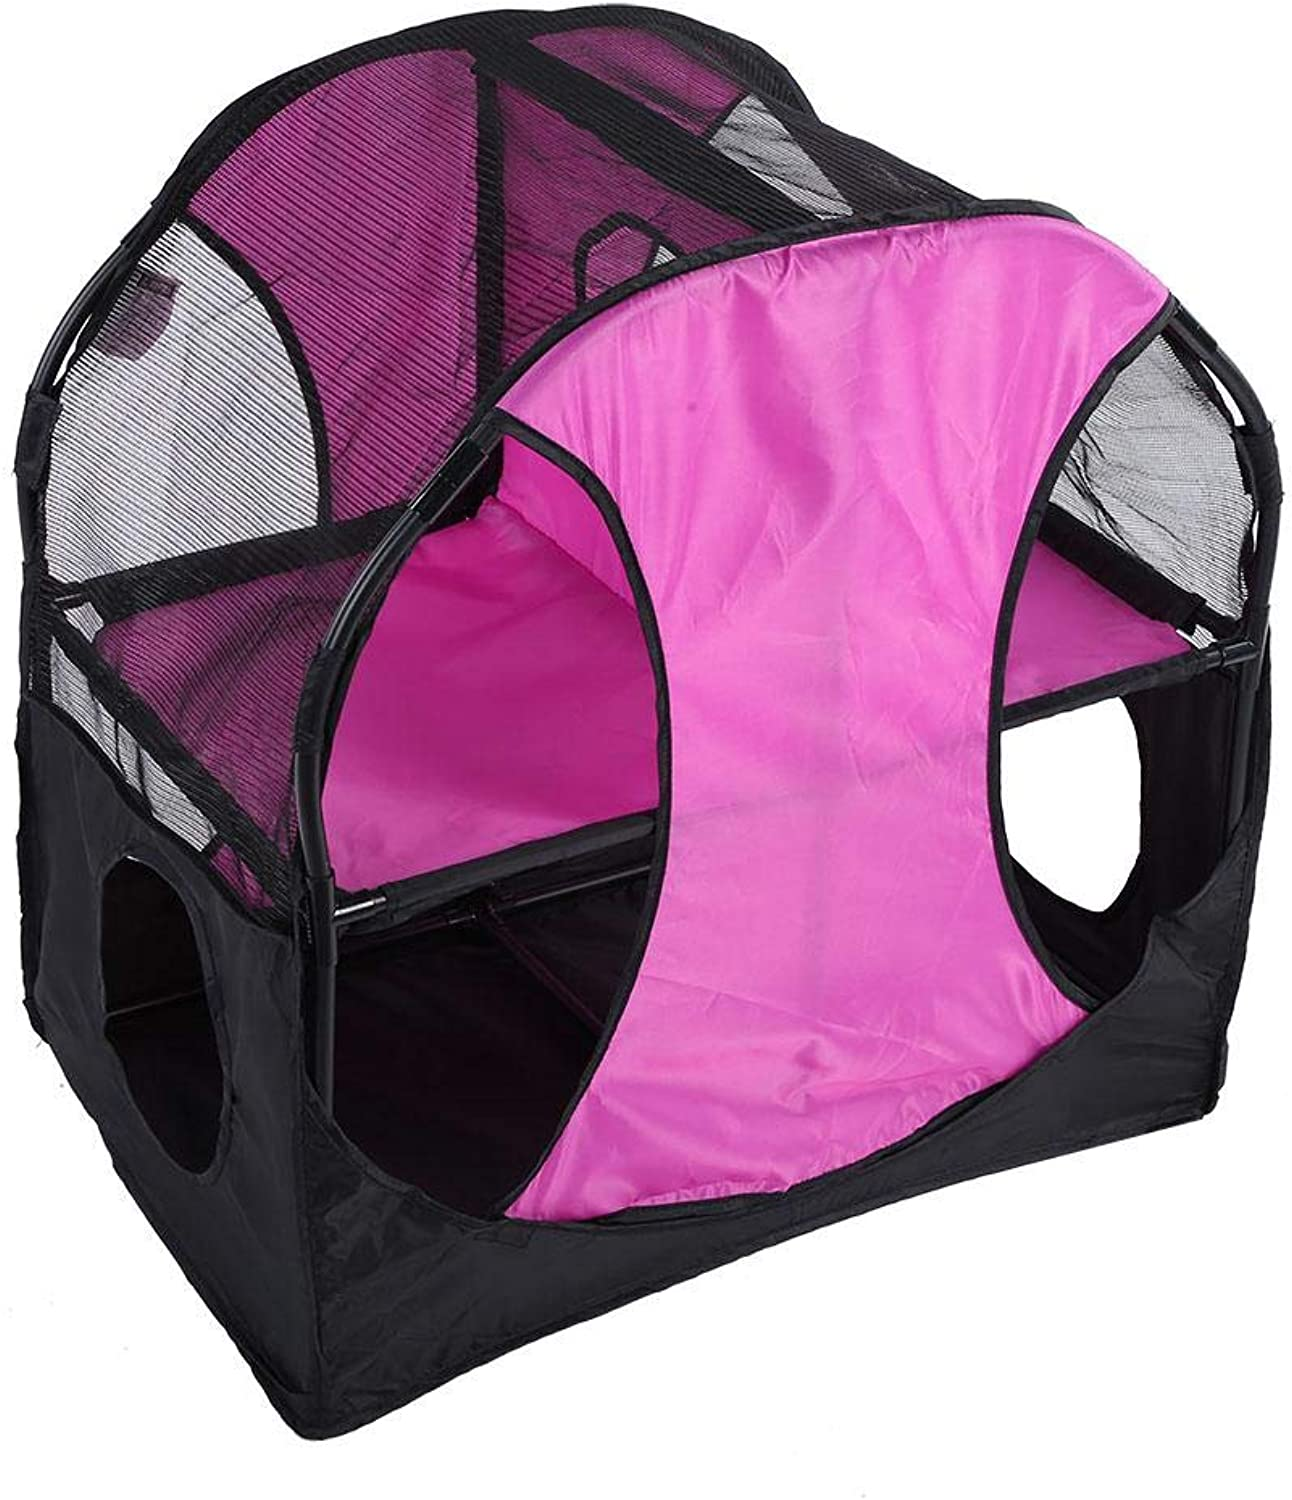 Cat Play Tent, Luxury Double Layer Cat Climbing Frame Jumping Platform DIY Oxford Cat Tunnel Jumping House